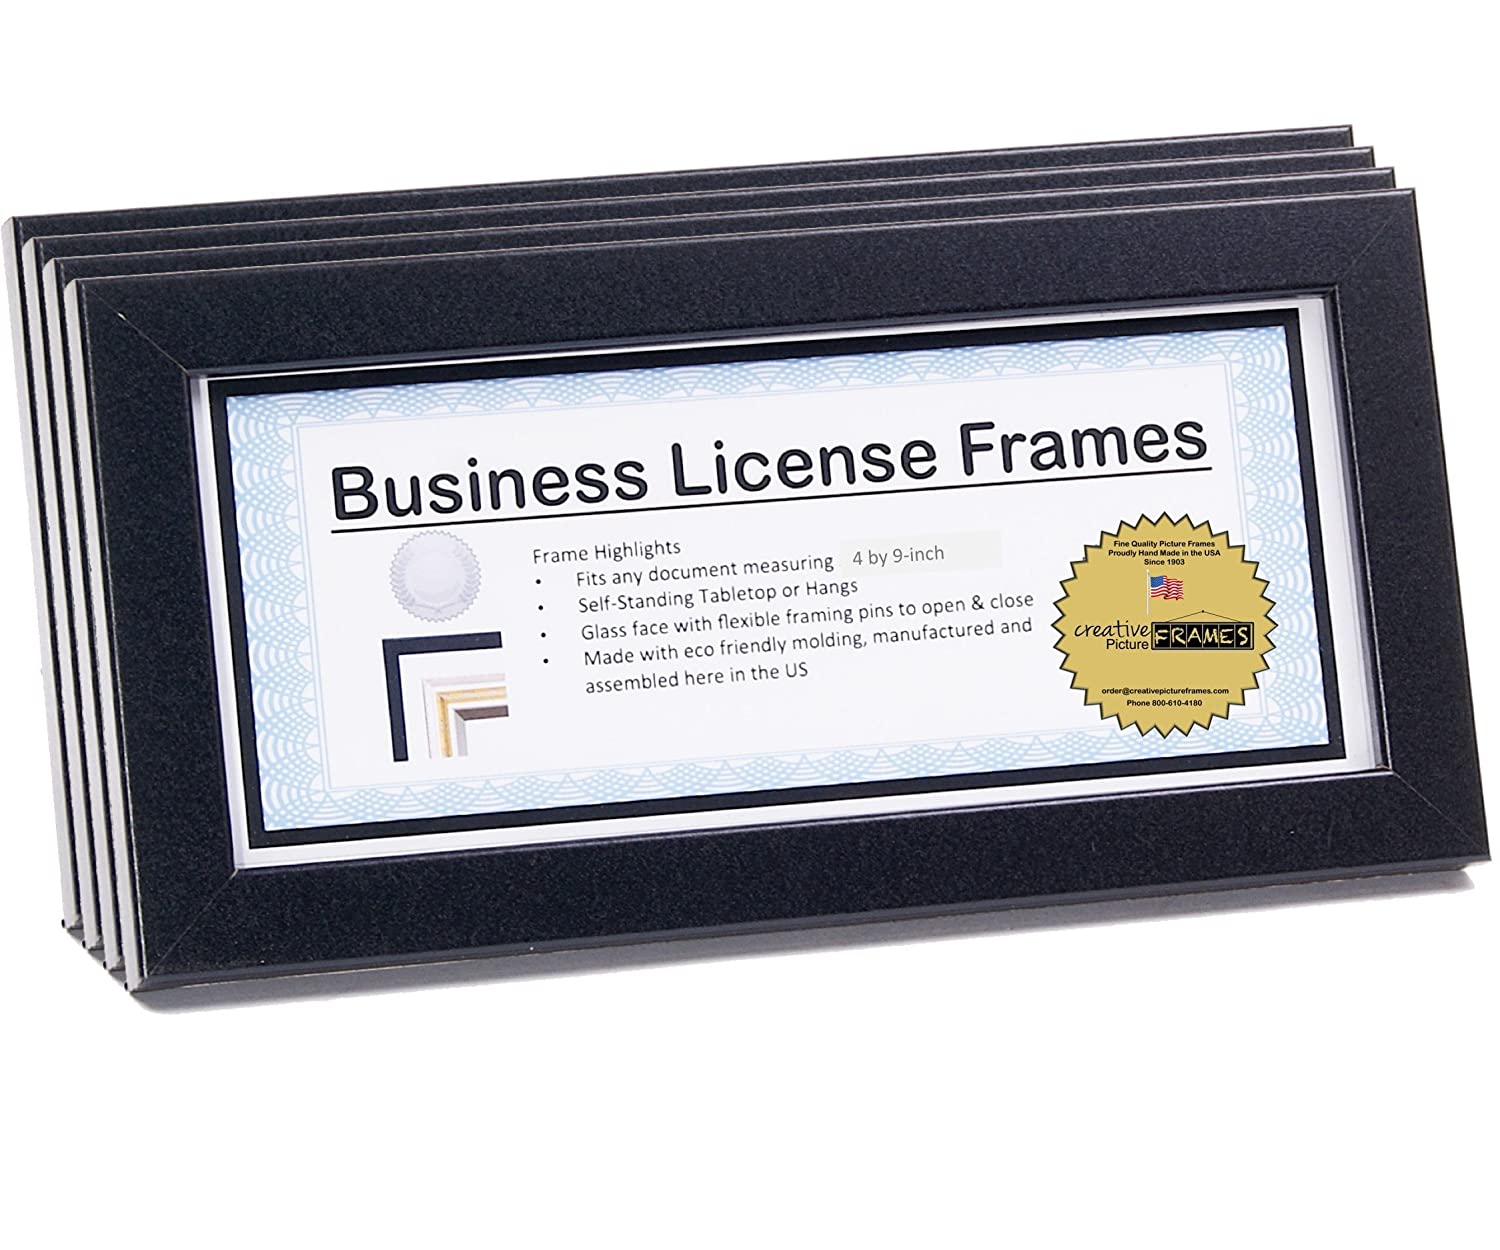 3.5 by 8.5 inch Professional Black Business License Certificate Frame, Self Standing with Wall Hanger Creative Picture Frames business4x9bk